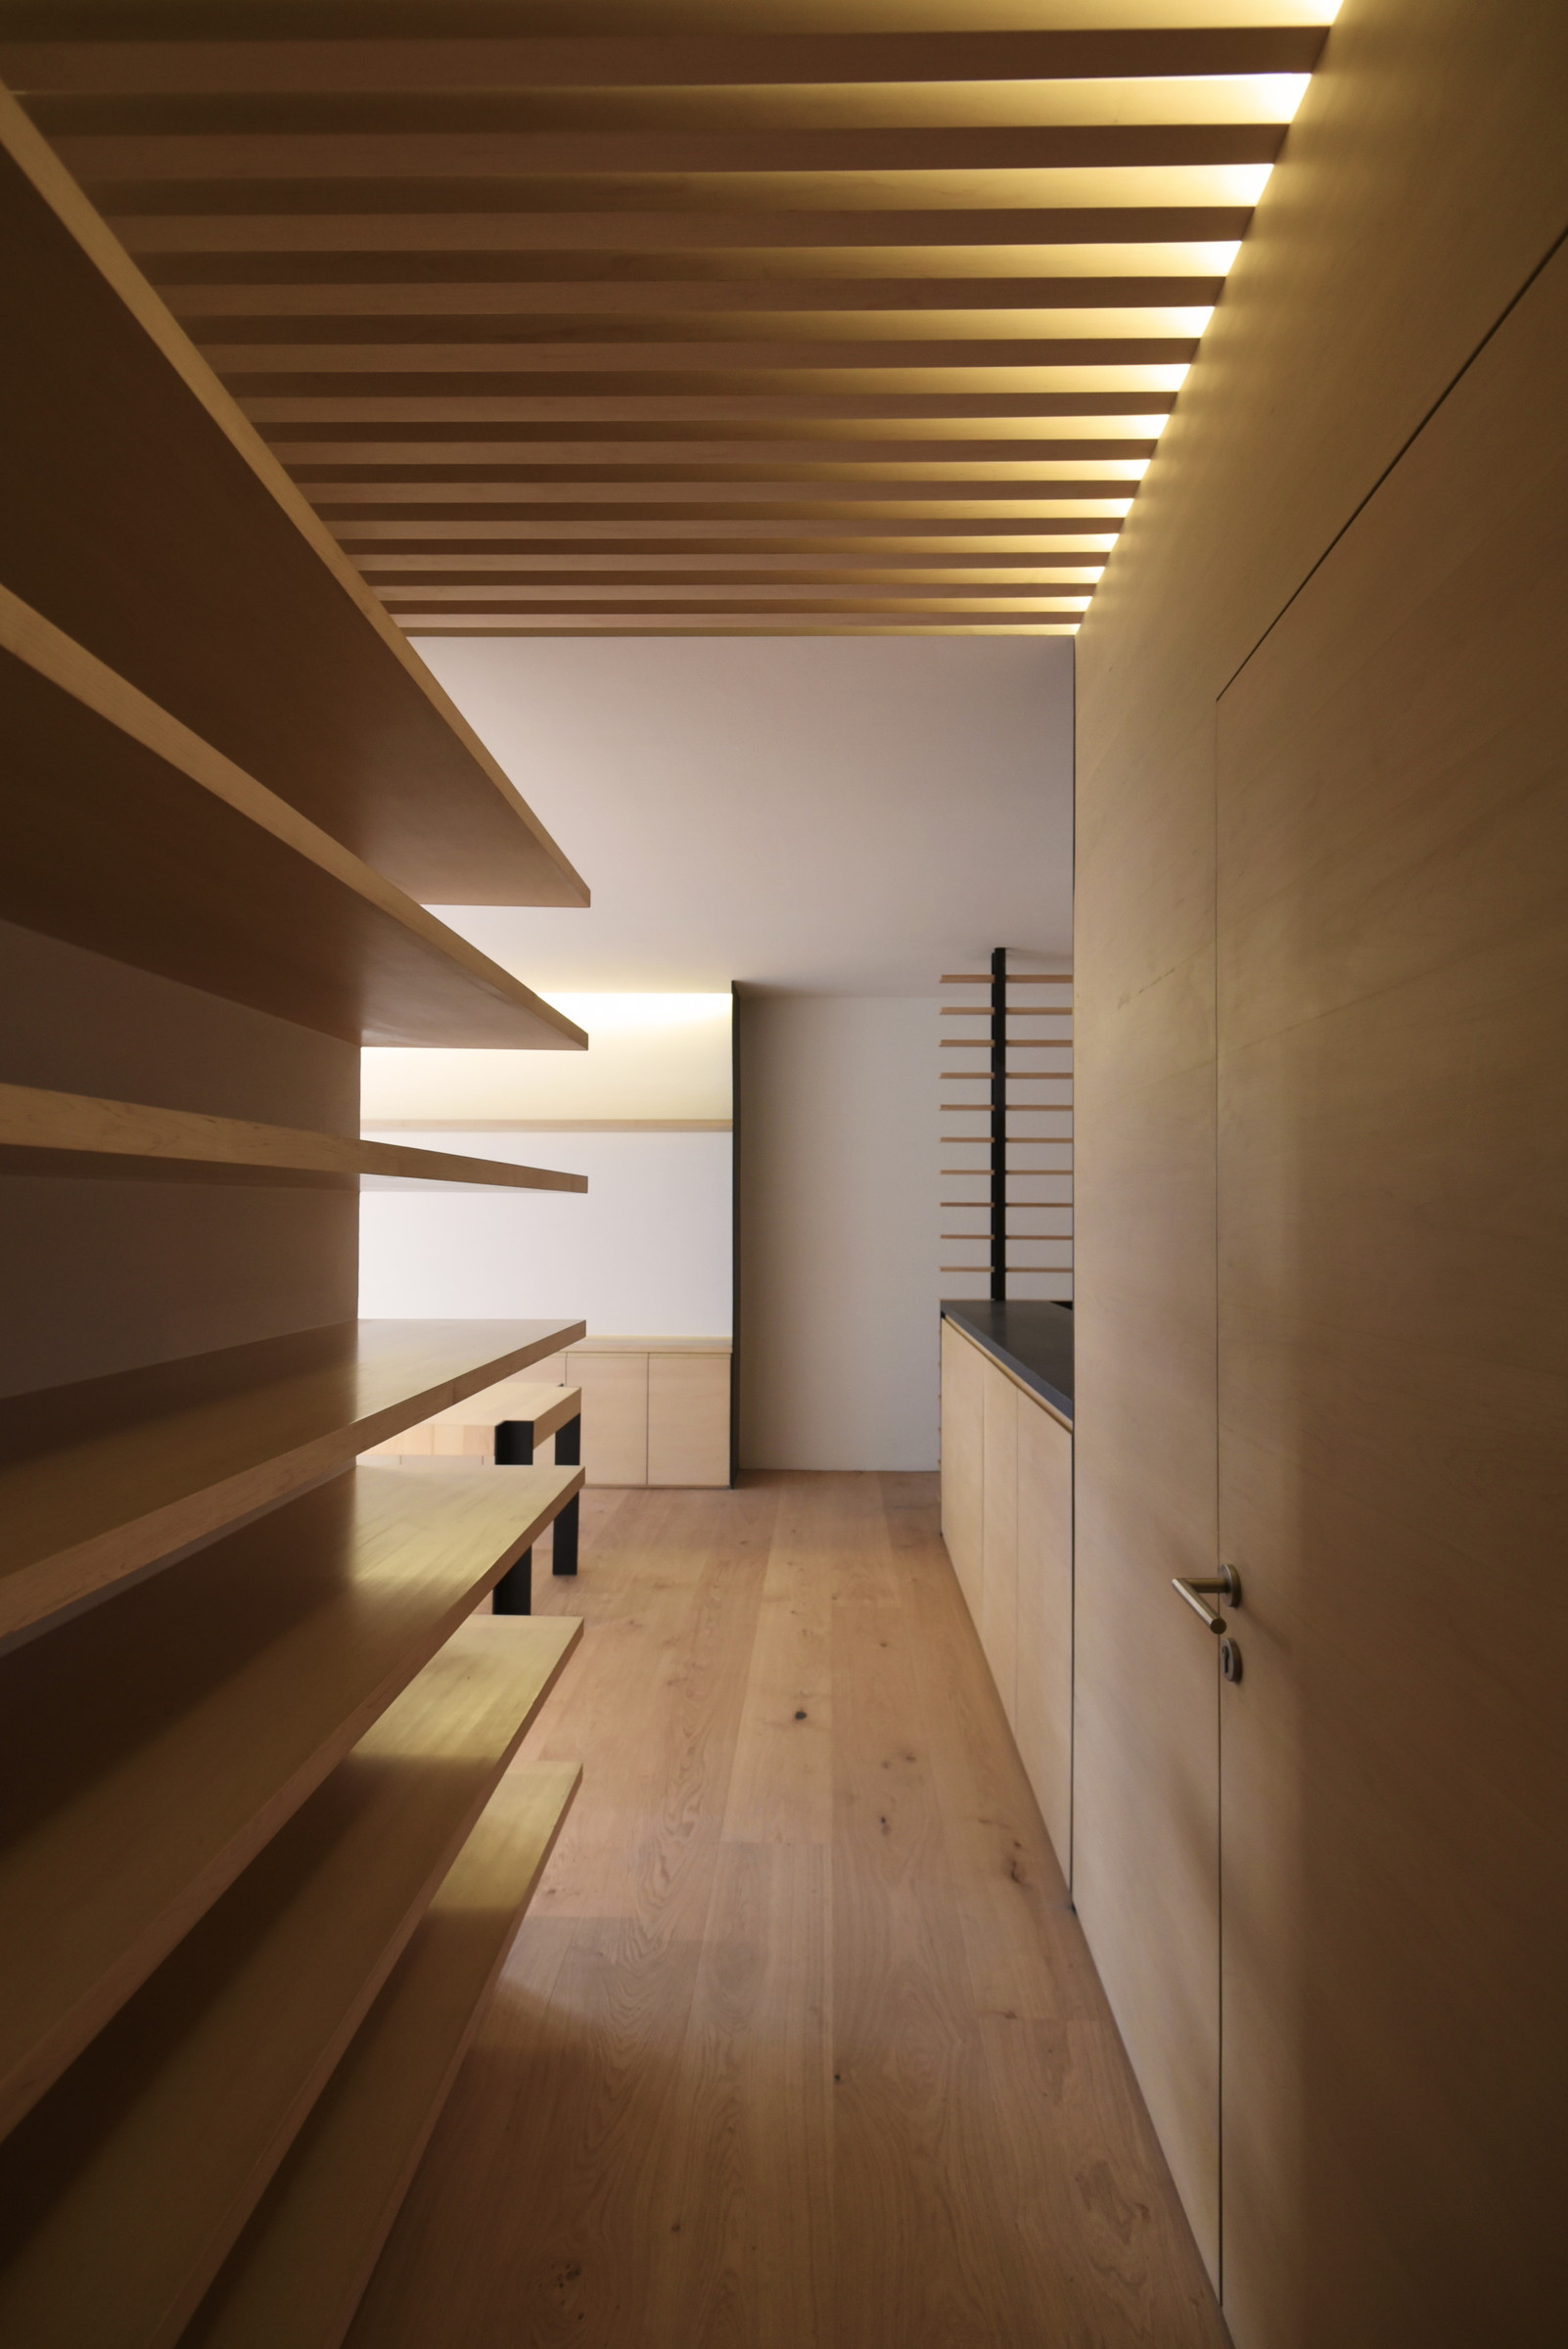 Satoshi Kawakami 川上聡 architecture 建築 architect Apartment in Polanco